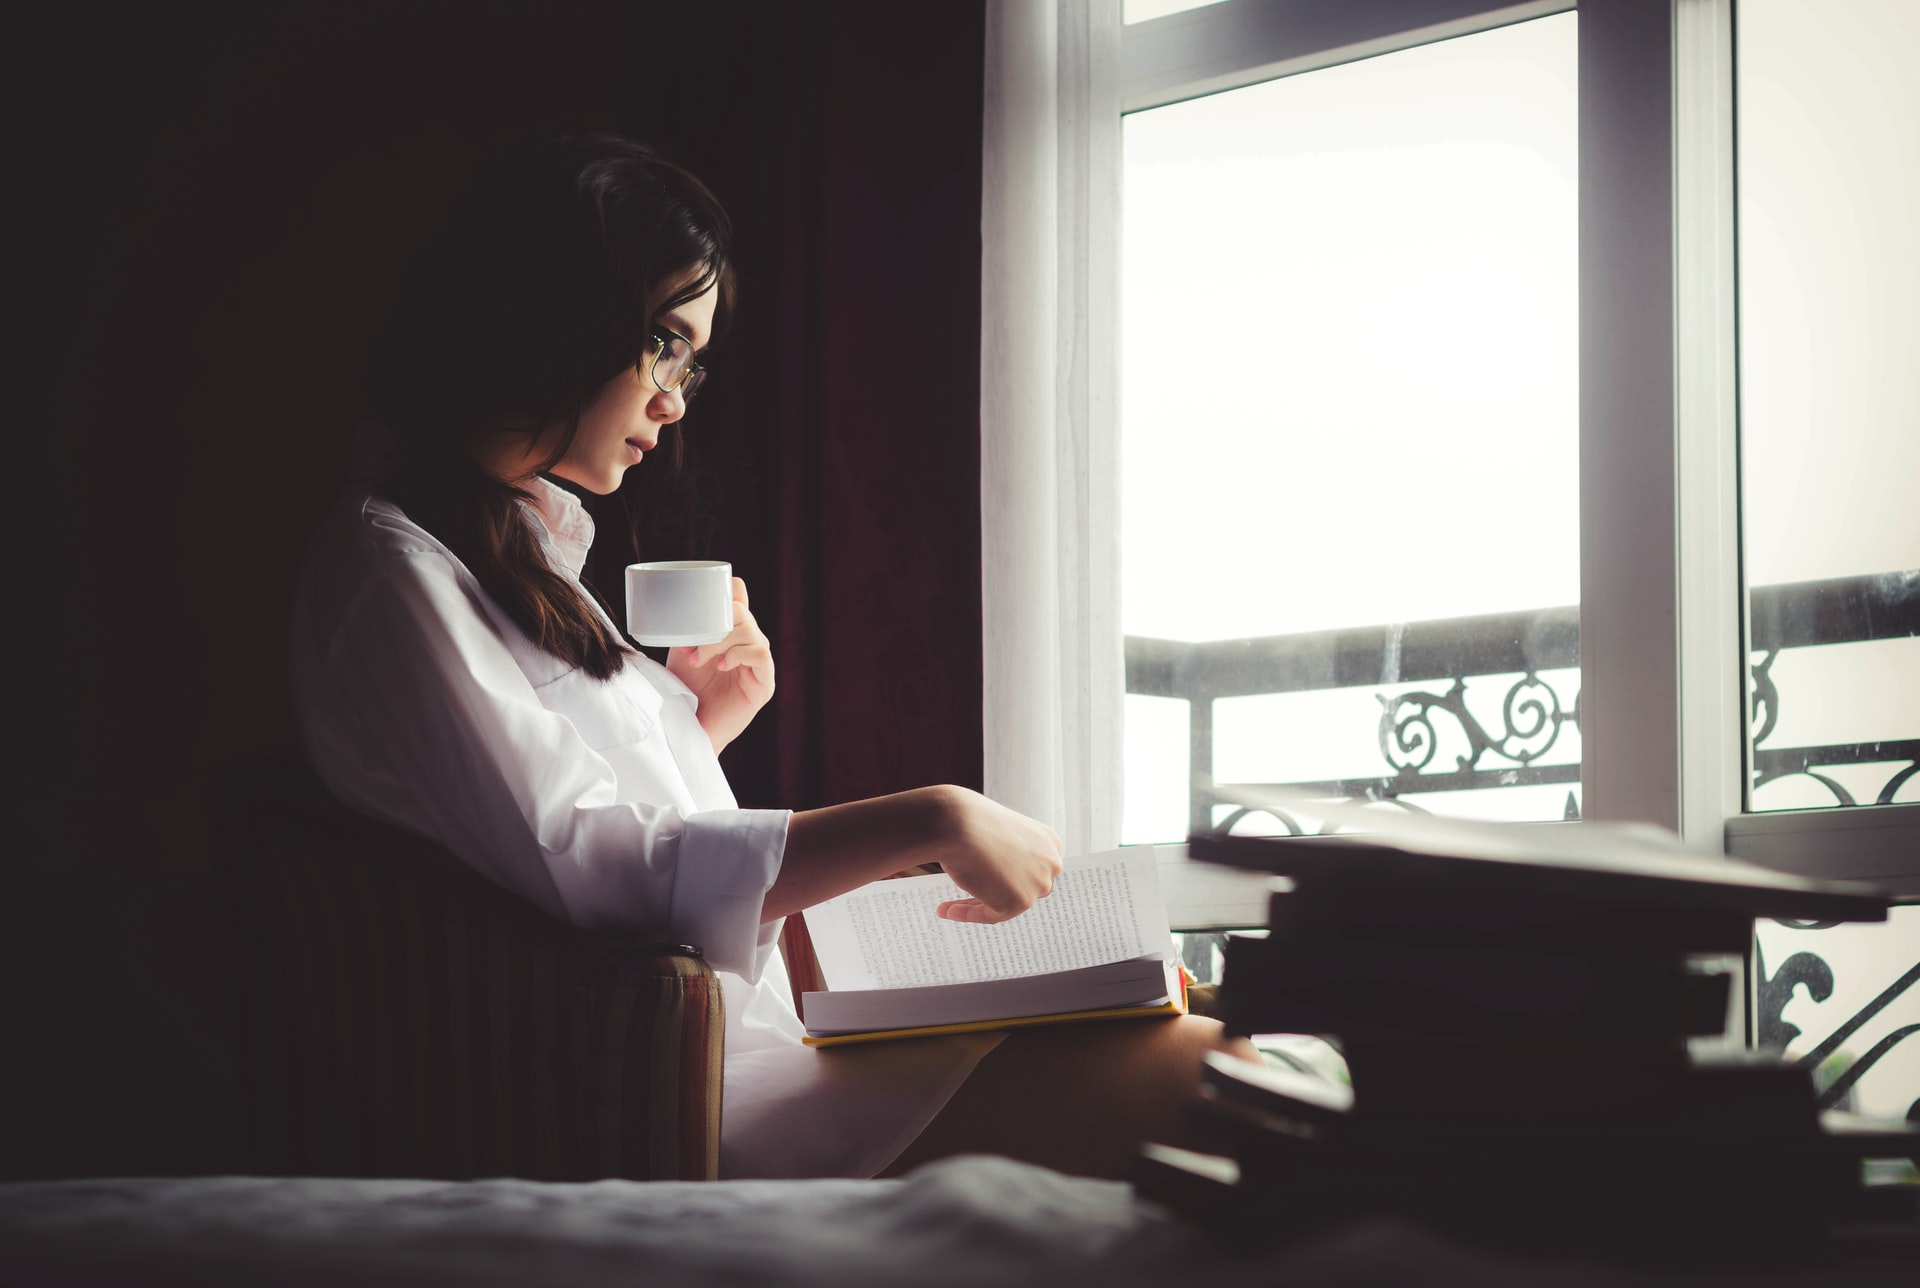 Asian woman reading with a cup of coffee by a window